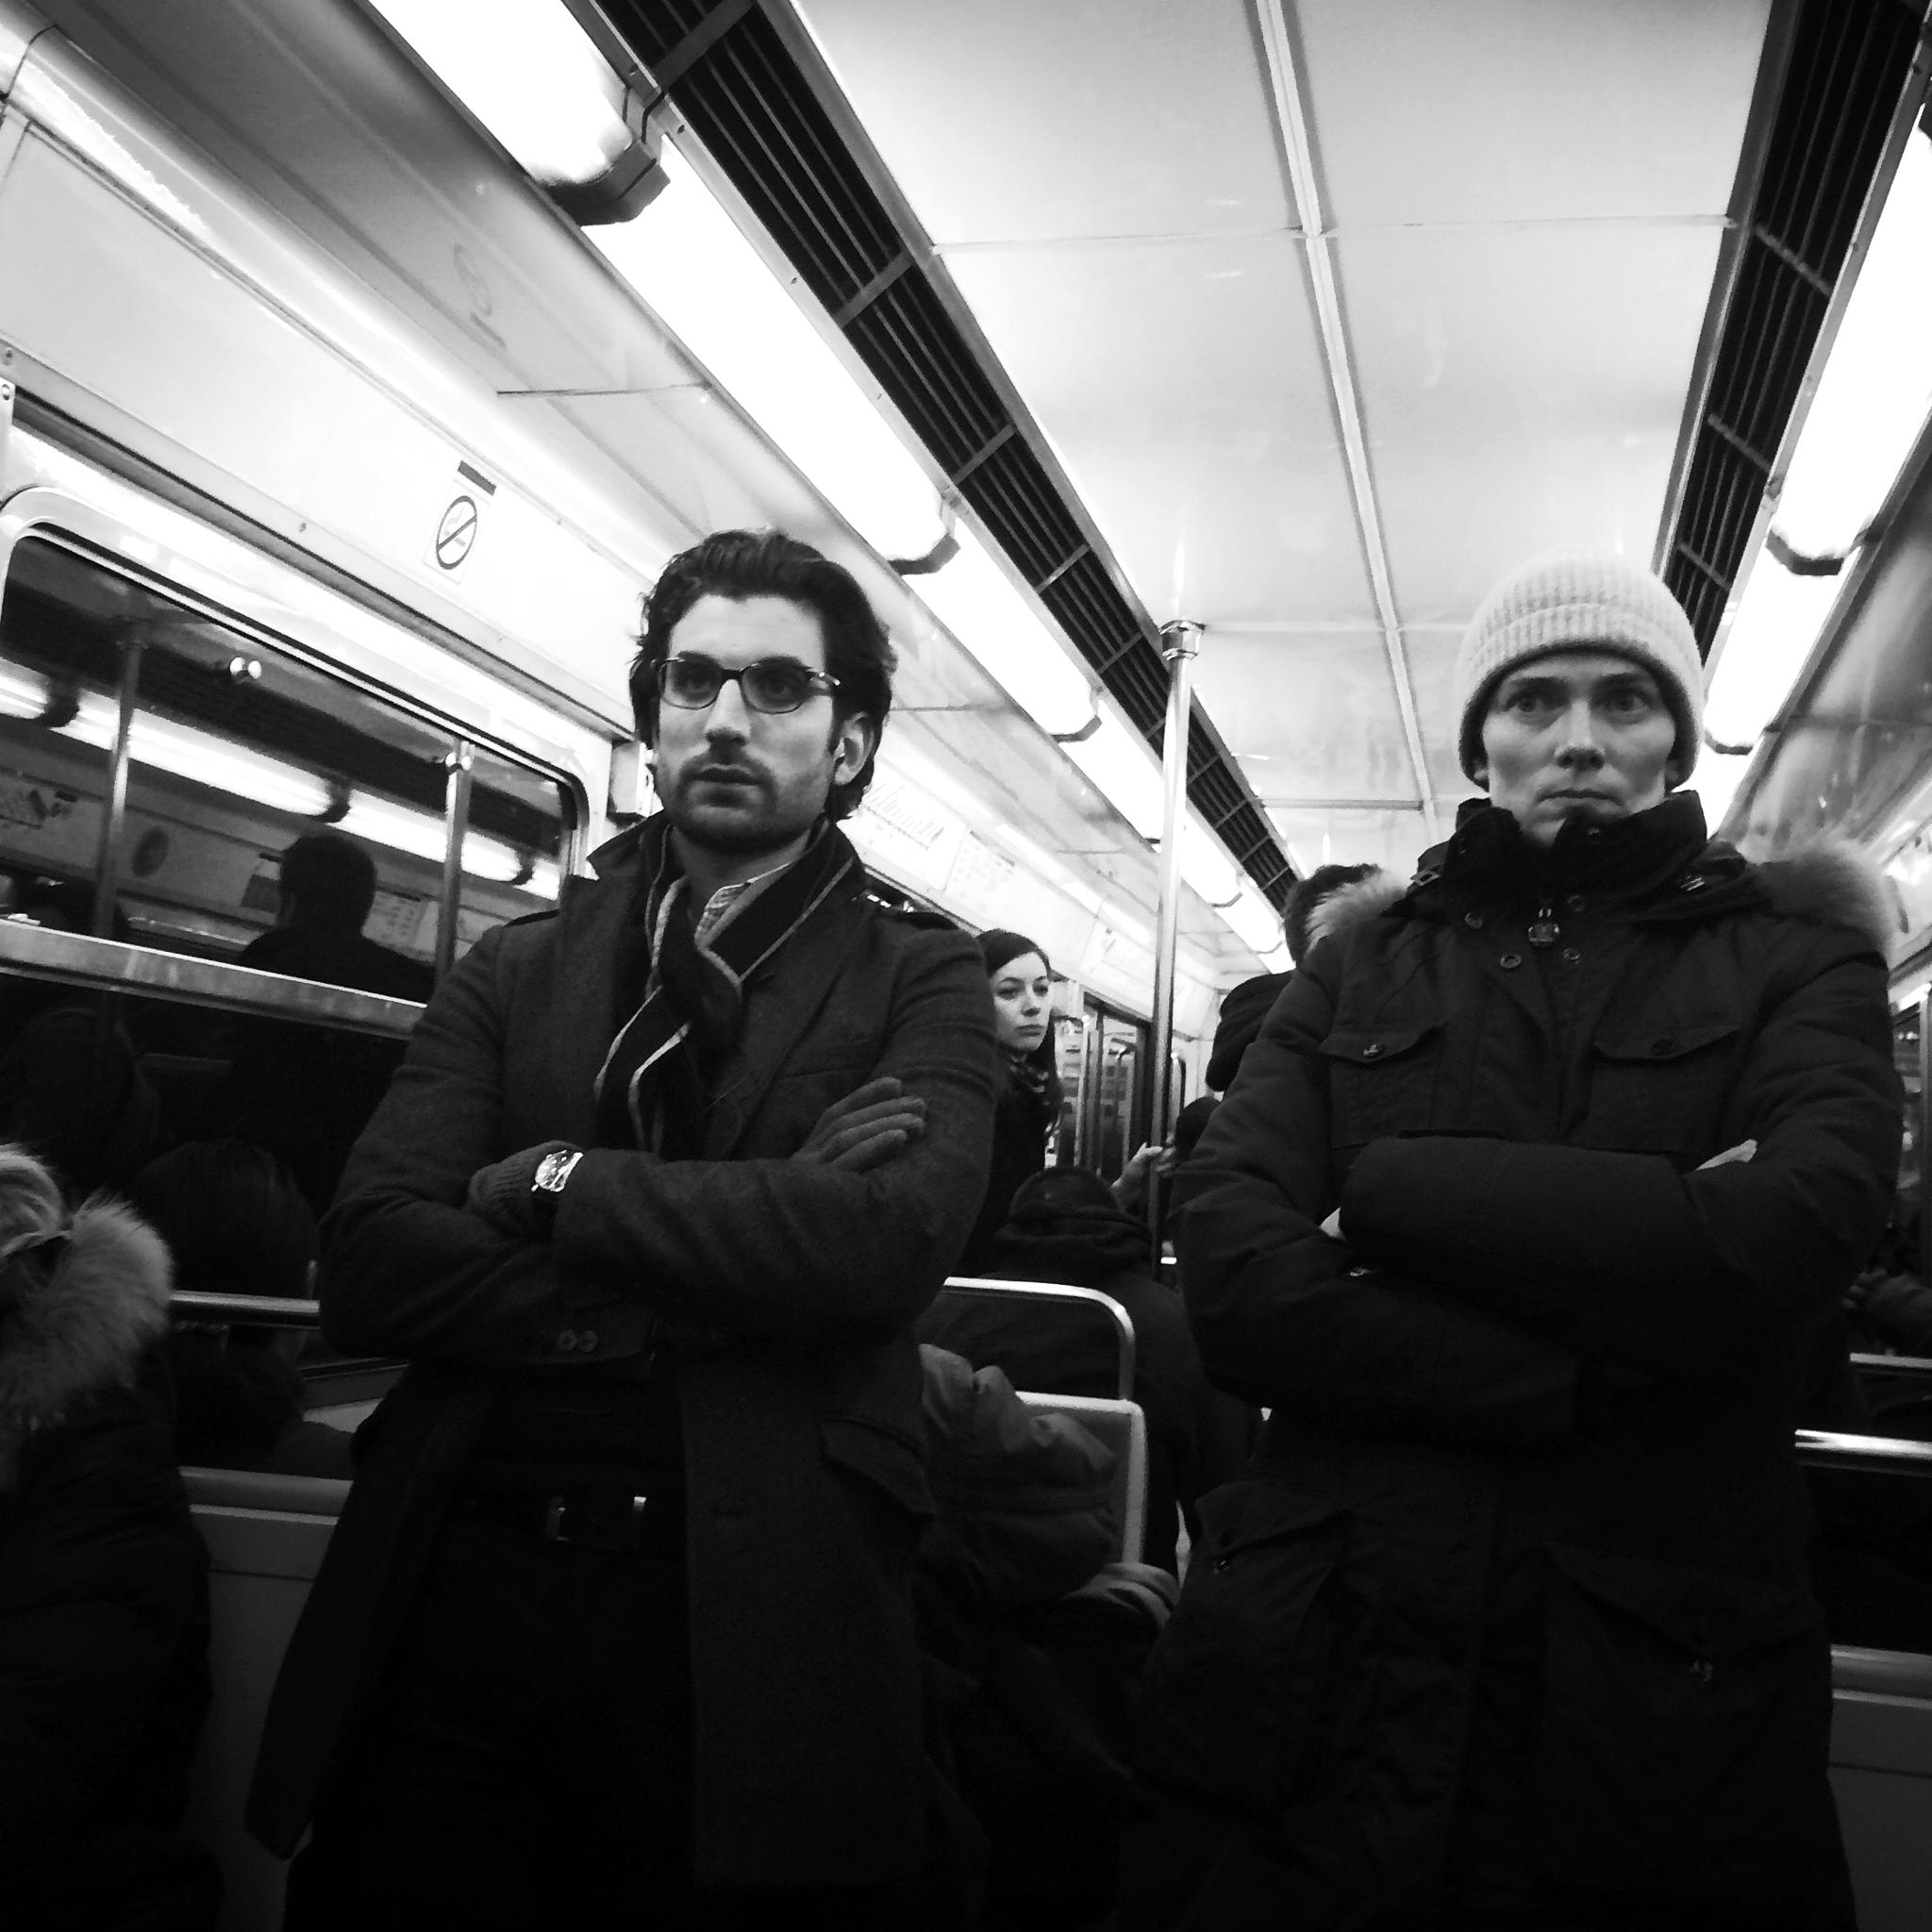 Folded arms on the metro by parisfind